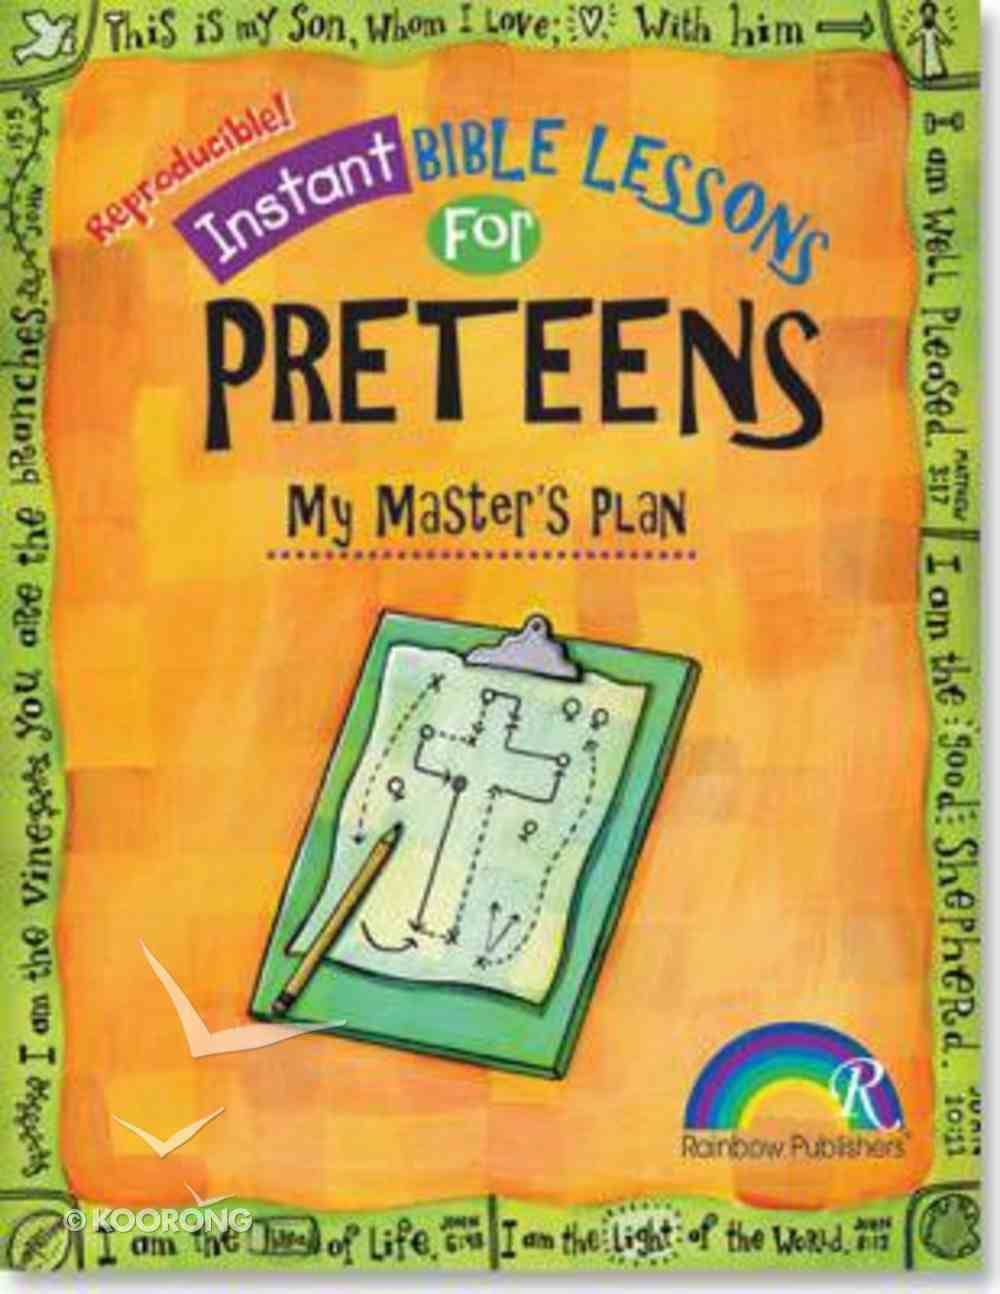 My Master's Plan (Ages 10-12) (Instant Bible Lessons Series) Paperback